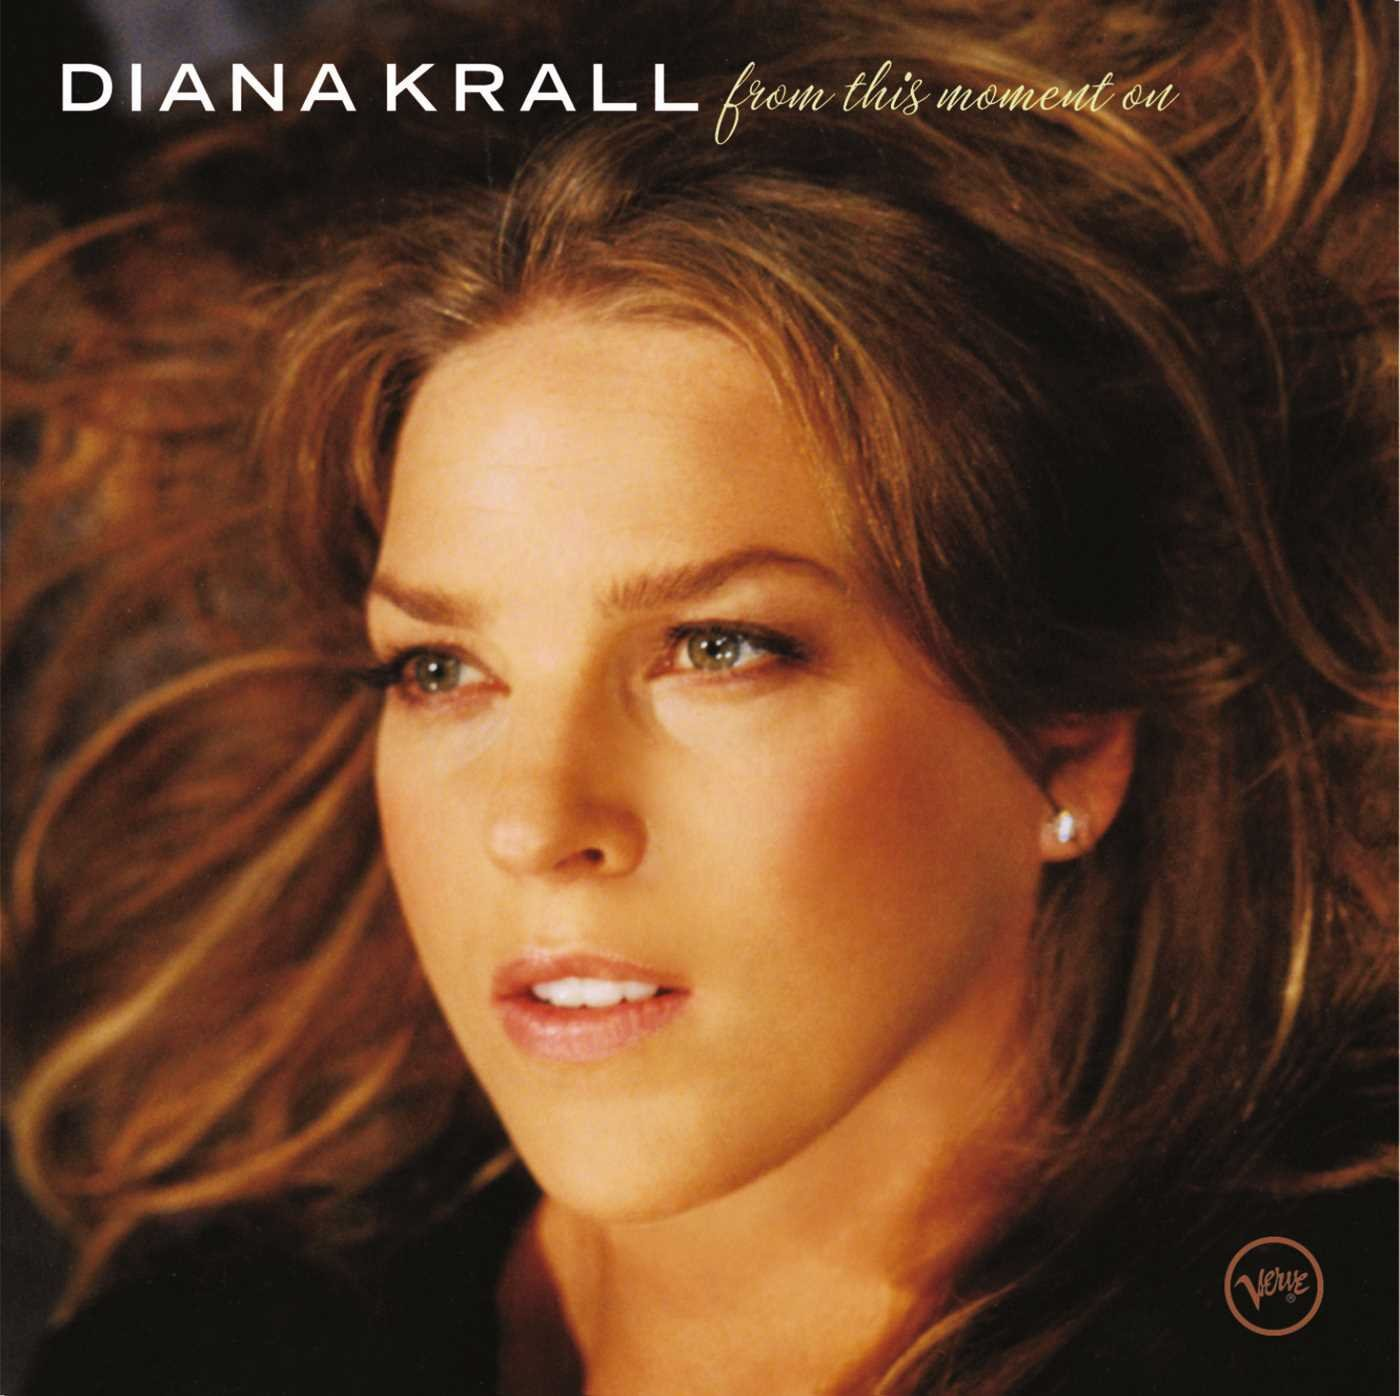 Diana Krall - From This Moment On - Amazon.com Music